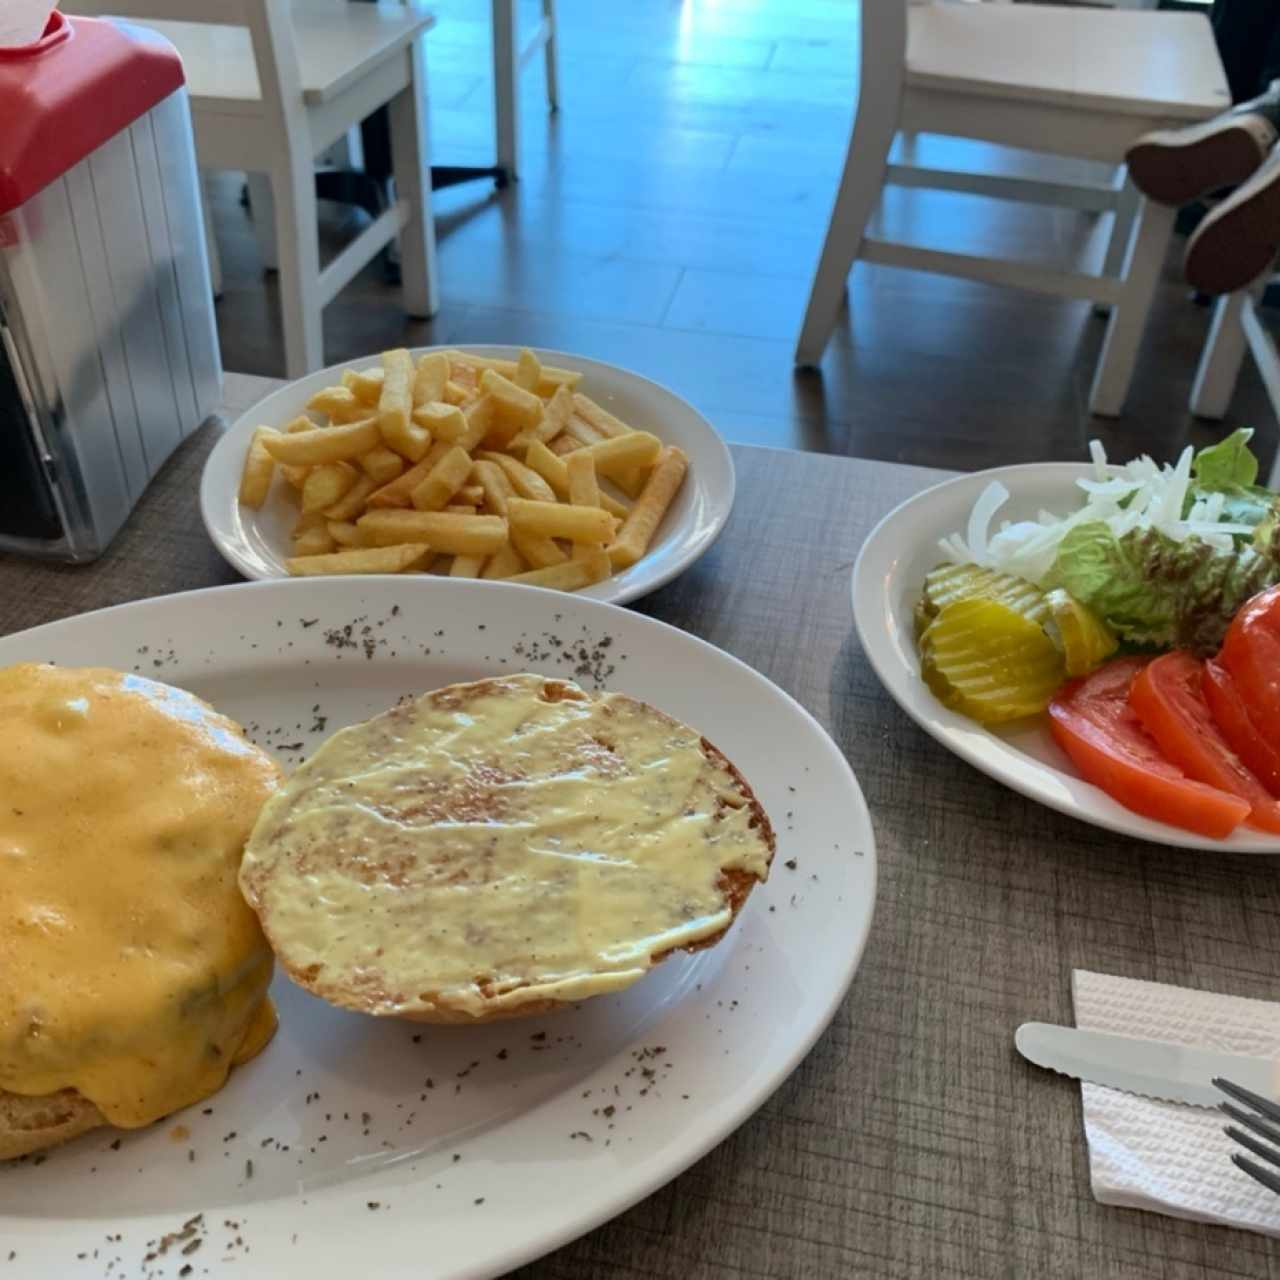 Hamburguesa con queso y papas